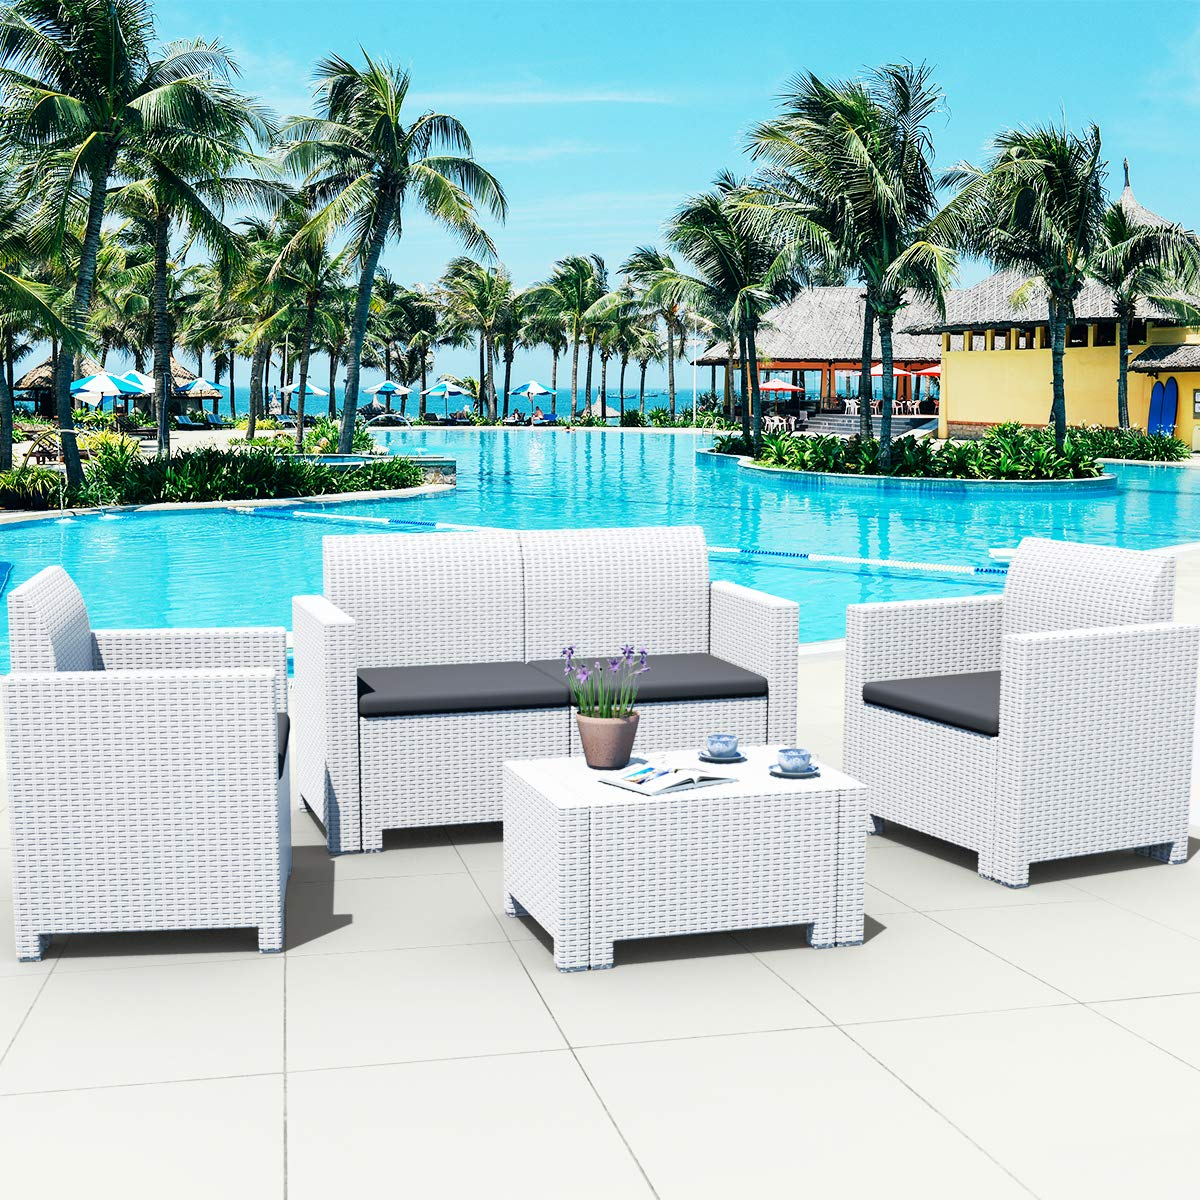 Tangkula 4-Piece Patio Furniture Set, Made in Italy Outdoor Wicker Conversation Set w Removable Cushion Sectional Sofa Set, for Backyard Porch Garden Poolside Balcony White